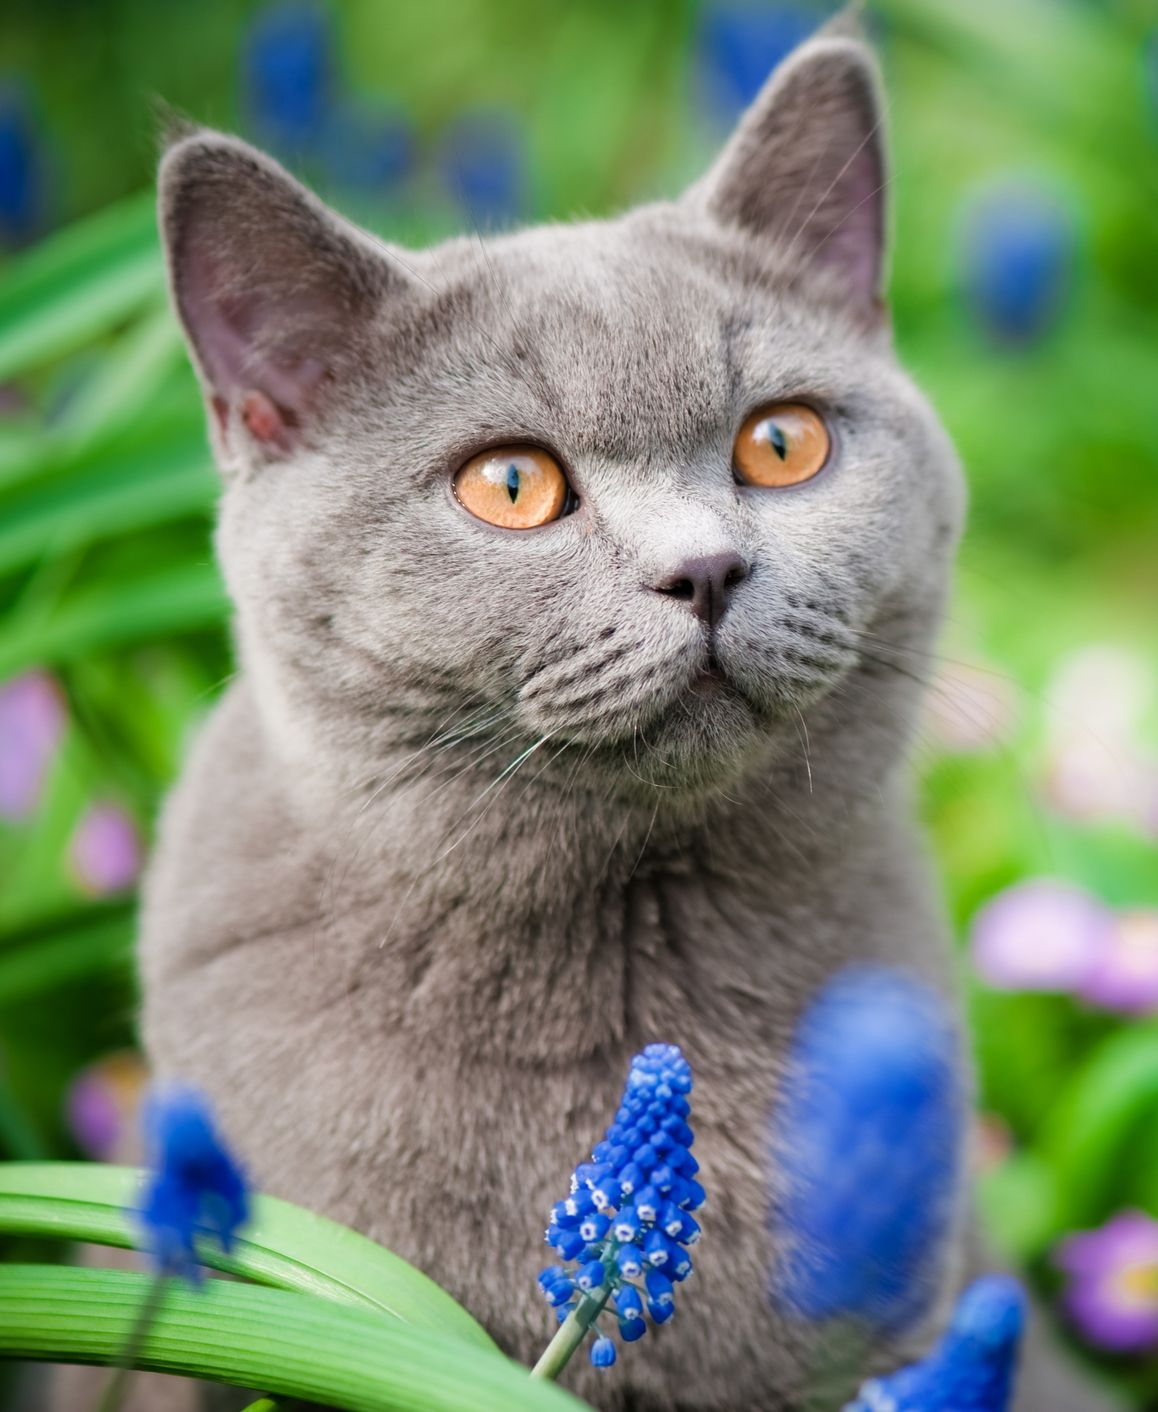 Benadryl For Cats Uses Dosage Side Effects In 2020 Benadryl For Cats Cats Cat Facts